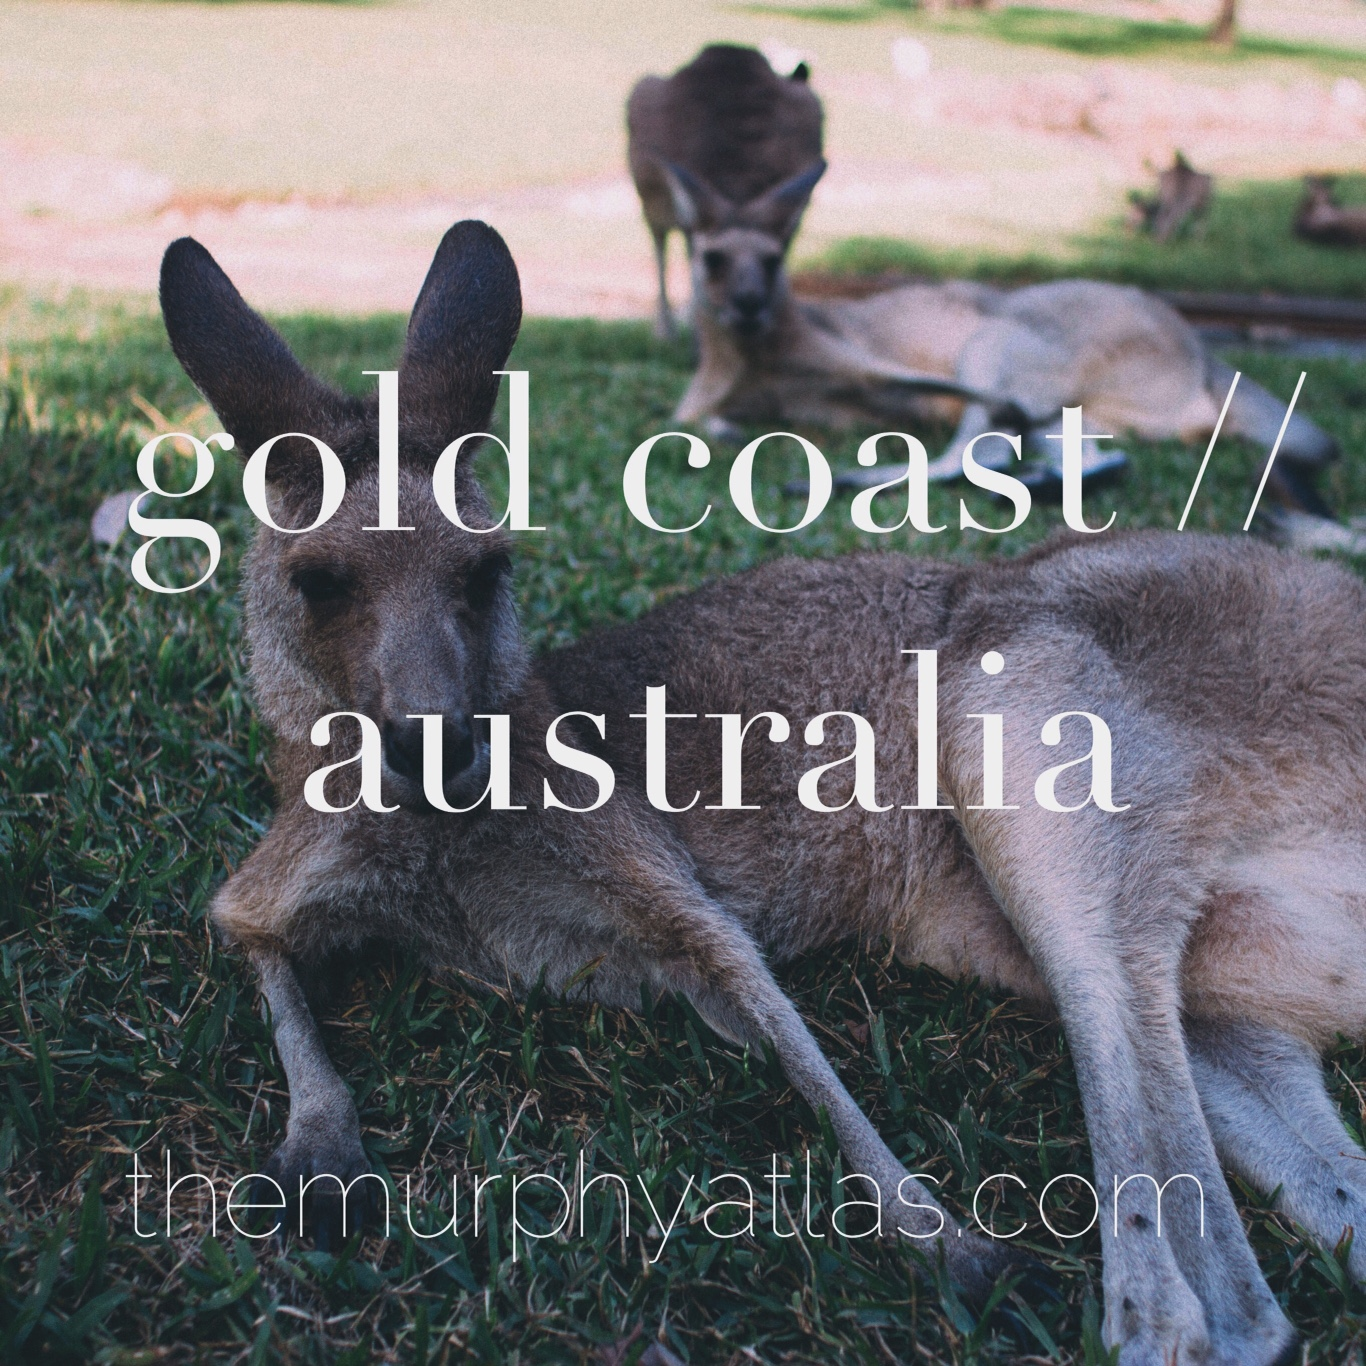 Gold Coast Australia City Guide - The Murphy Atlas